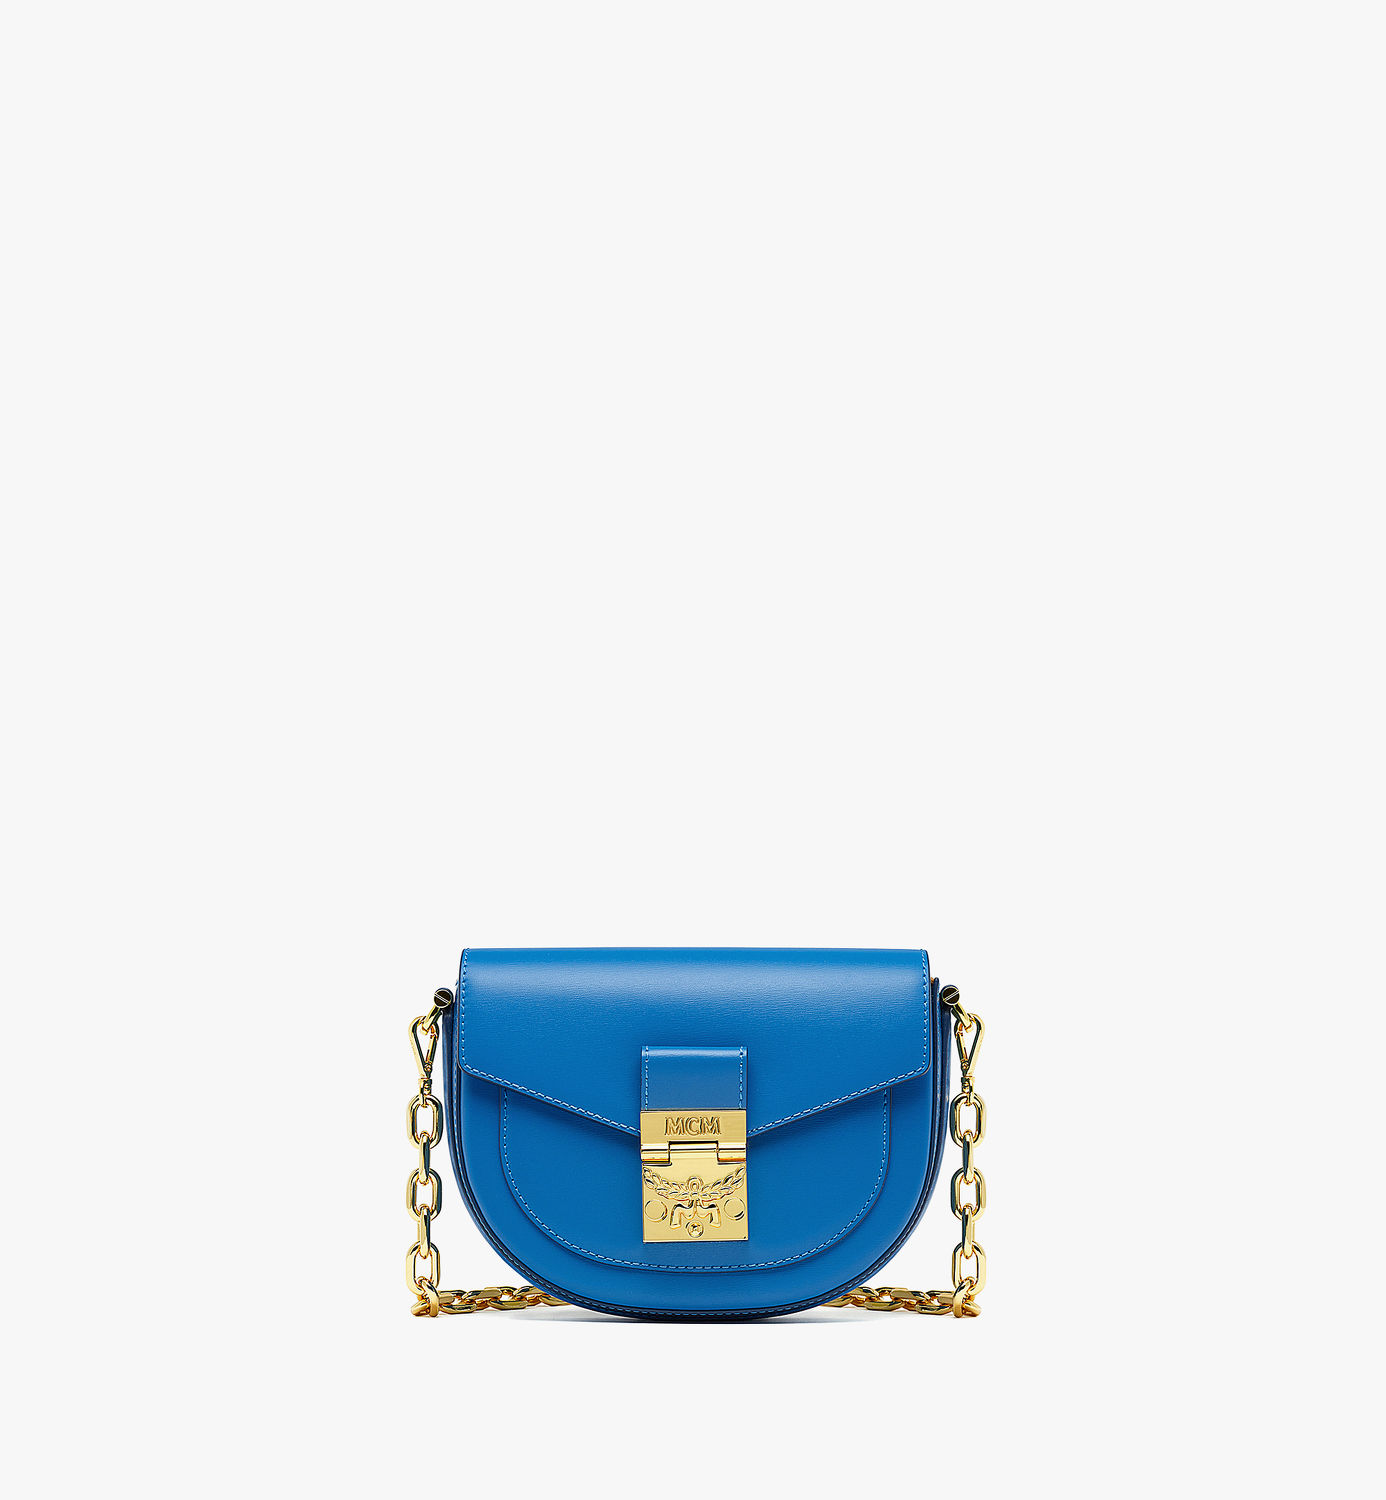 Patricia crossbody bags by MCM - THE EDGE SINGAPORE